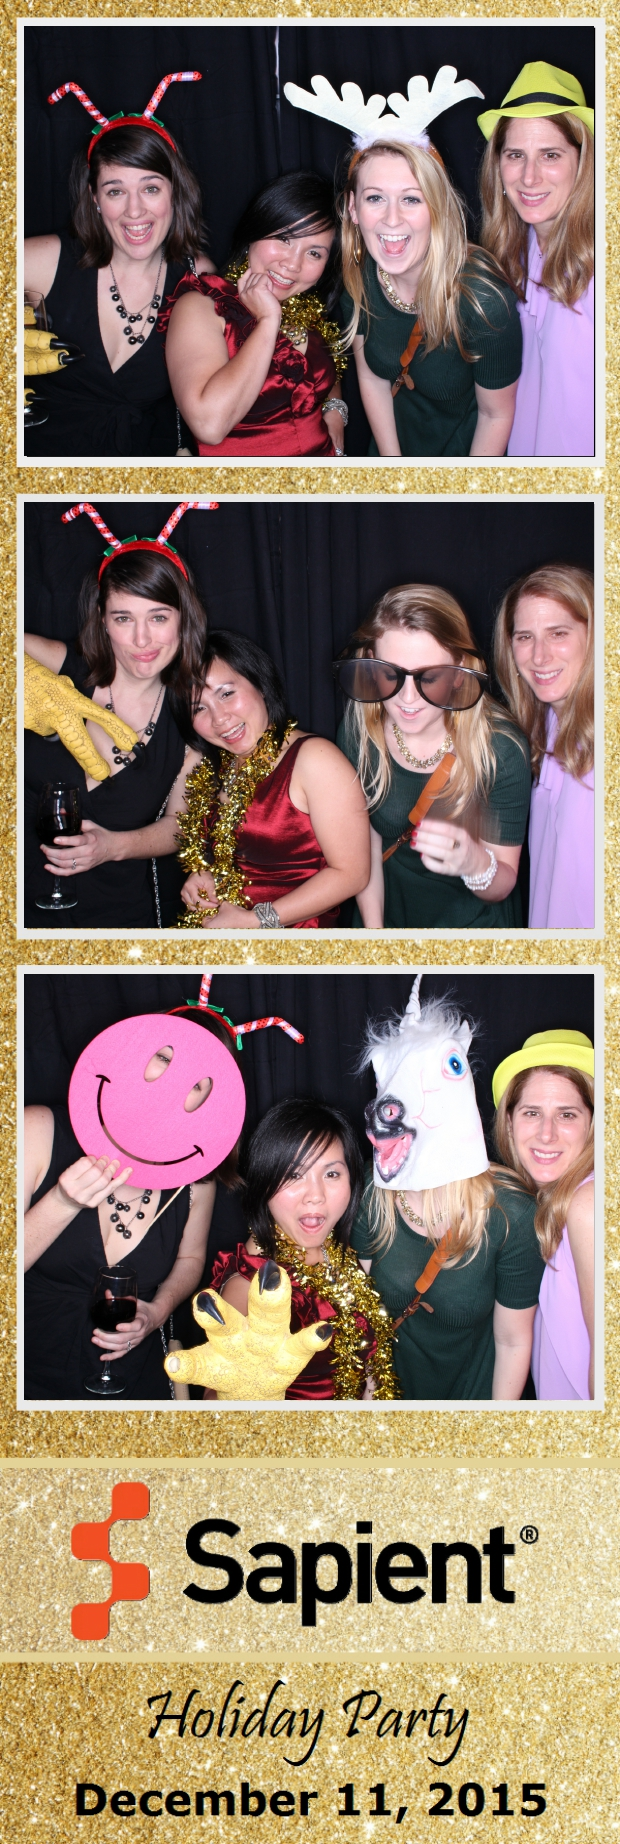 Guest House Events Photo Booth Sapient Holiday Party (8).jpg